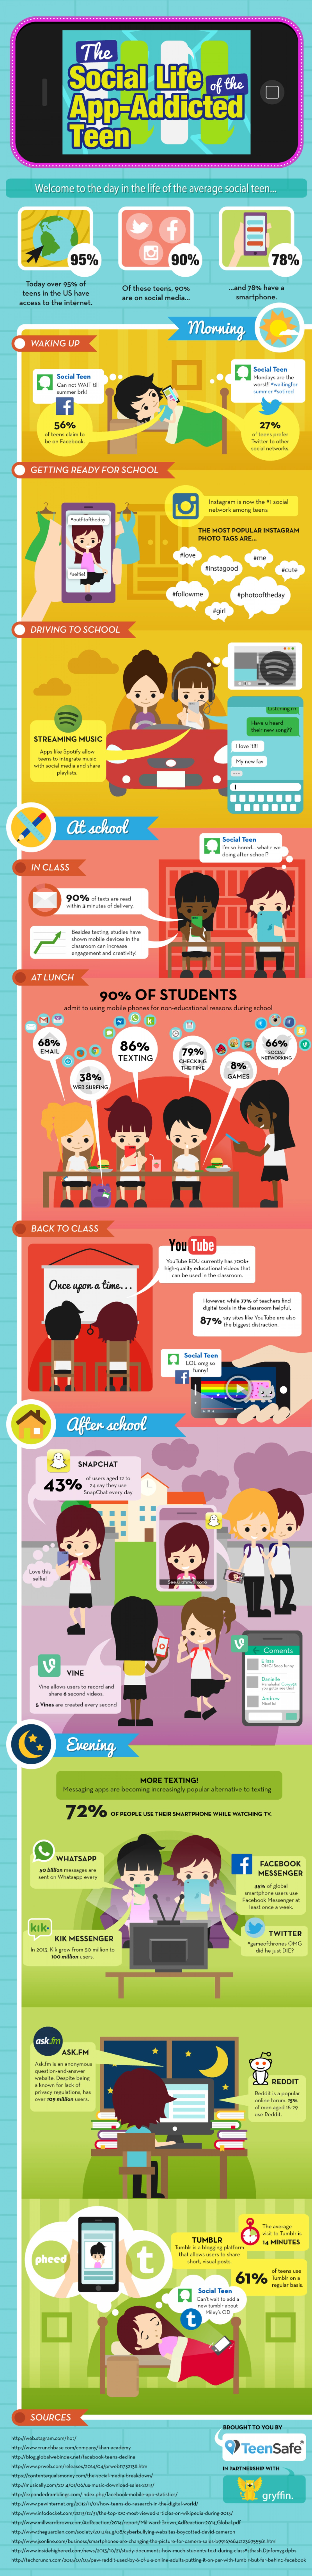 The Social Life of the app Addicted Teen. Today over 95% of teens in the US have access to the internet. Of these teens, 90%are on social media...and 78% have a smartphone.